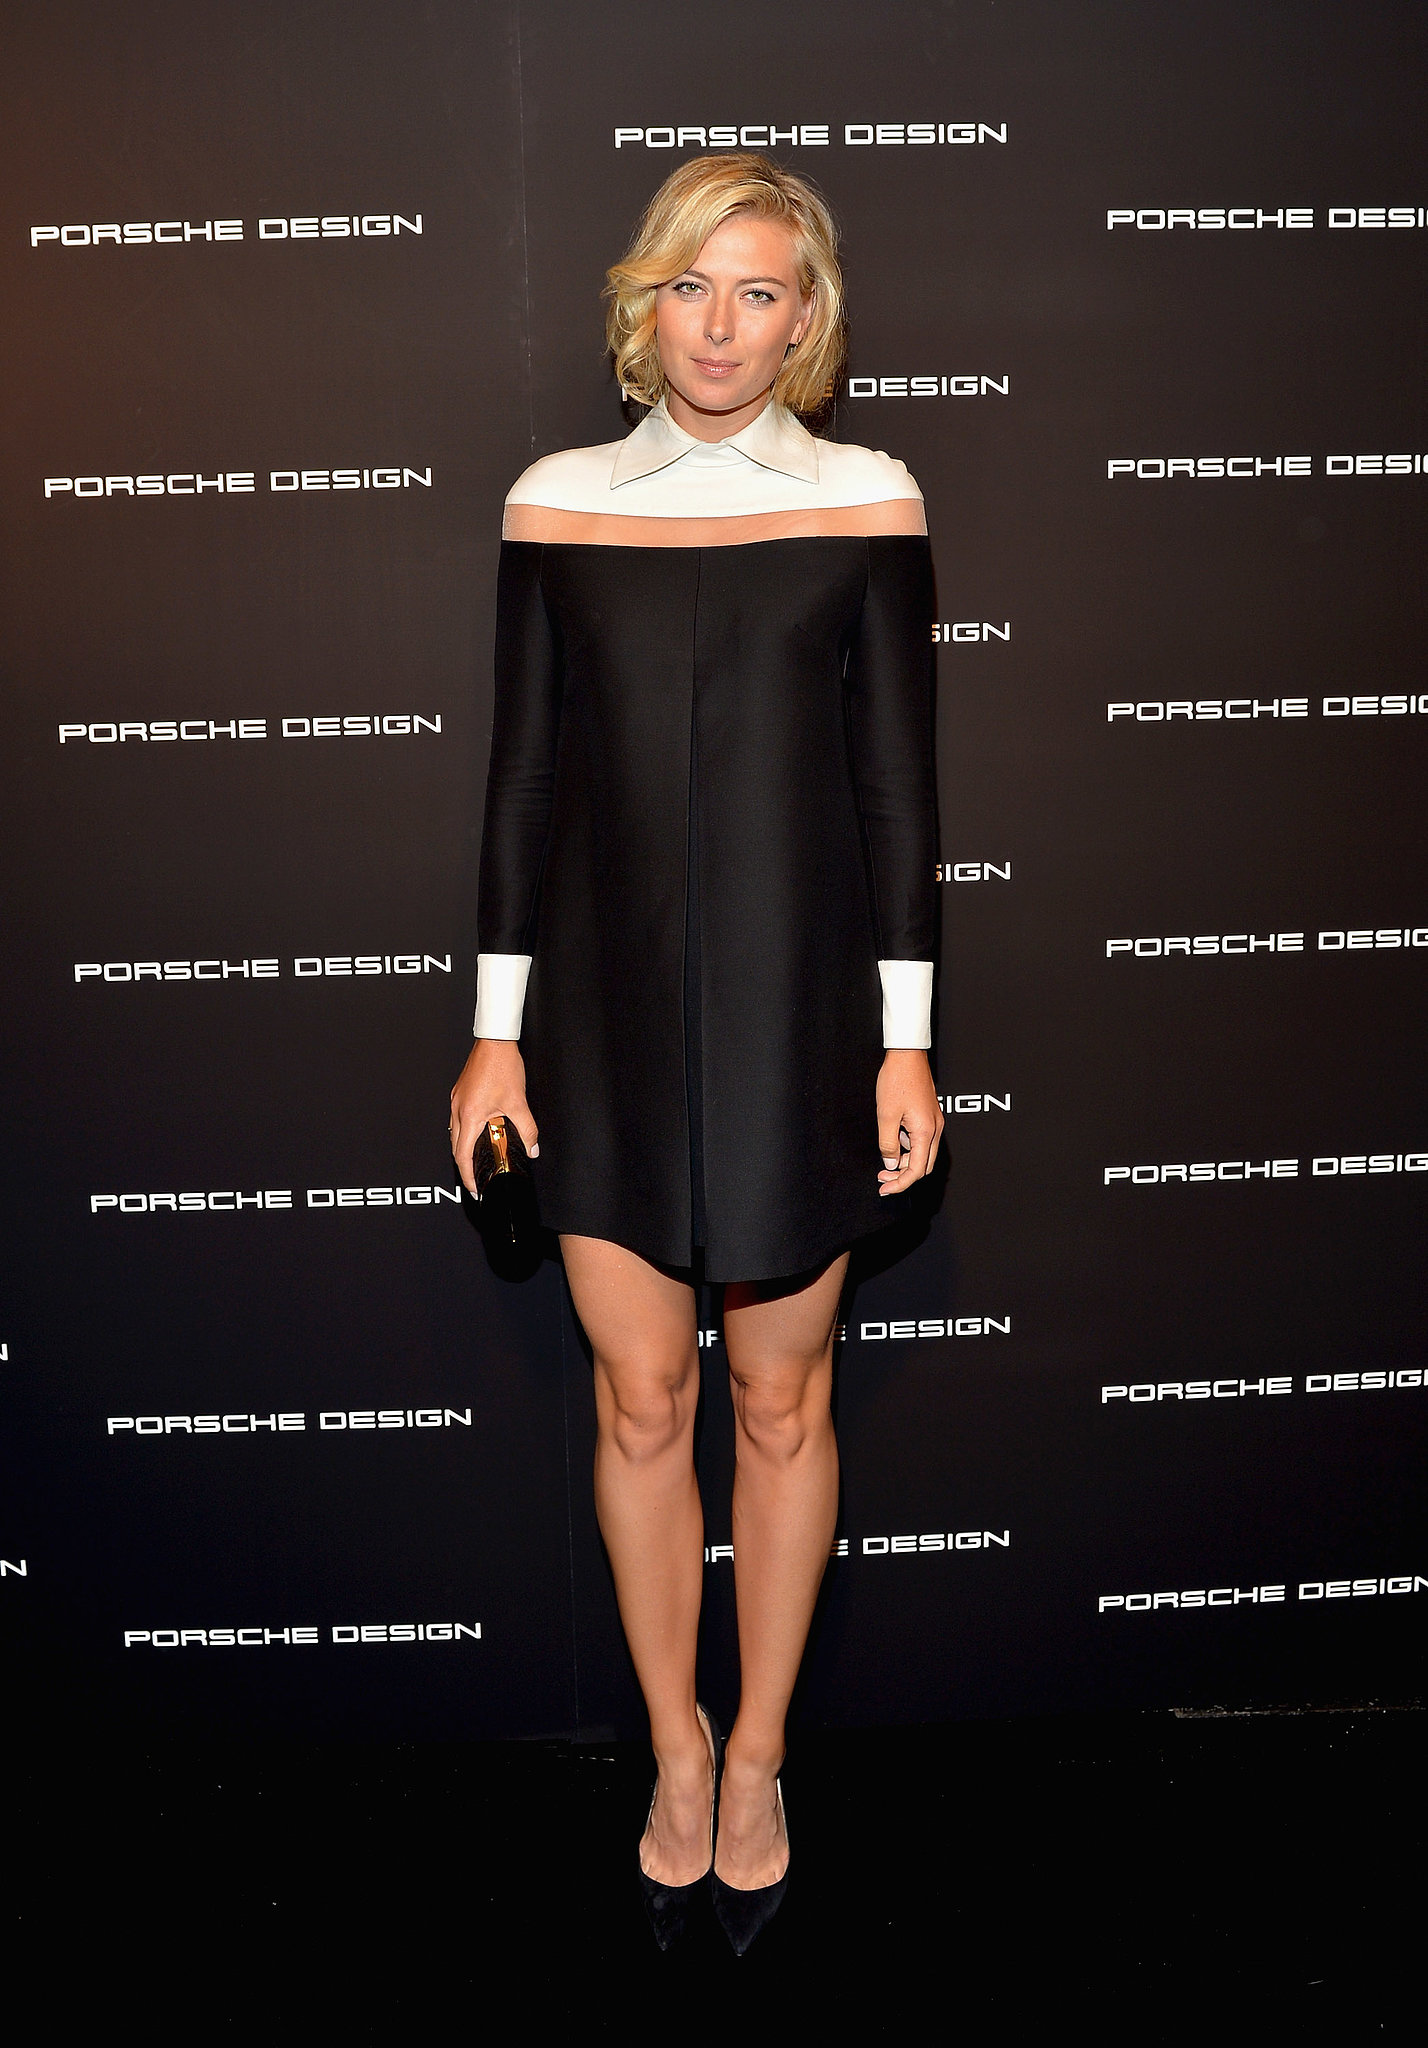 Looking leggy as ever, Maria Sharapova helped Porsche Design and Vogue reopen the car brand's Beverly Hills boutique in a colorbloc